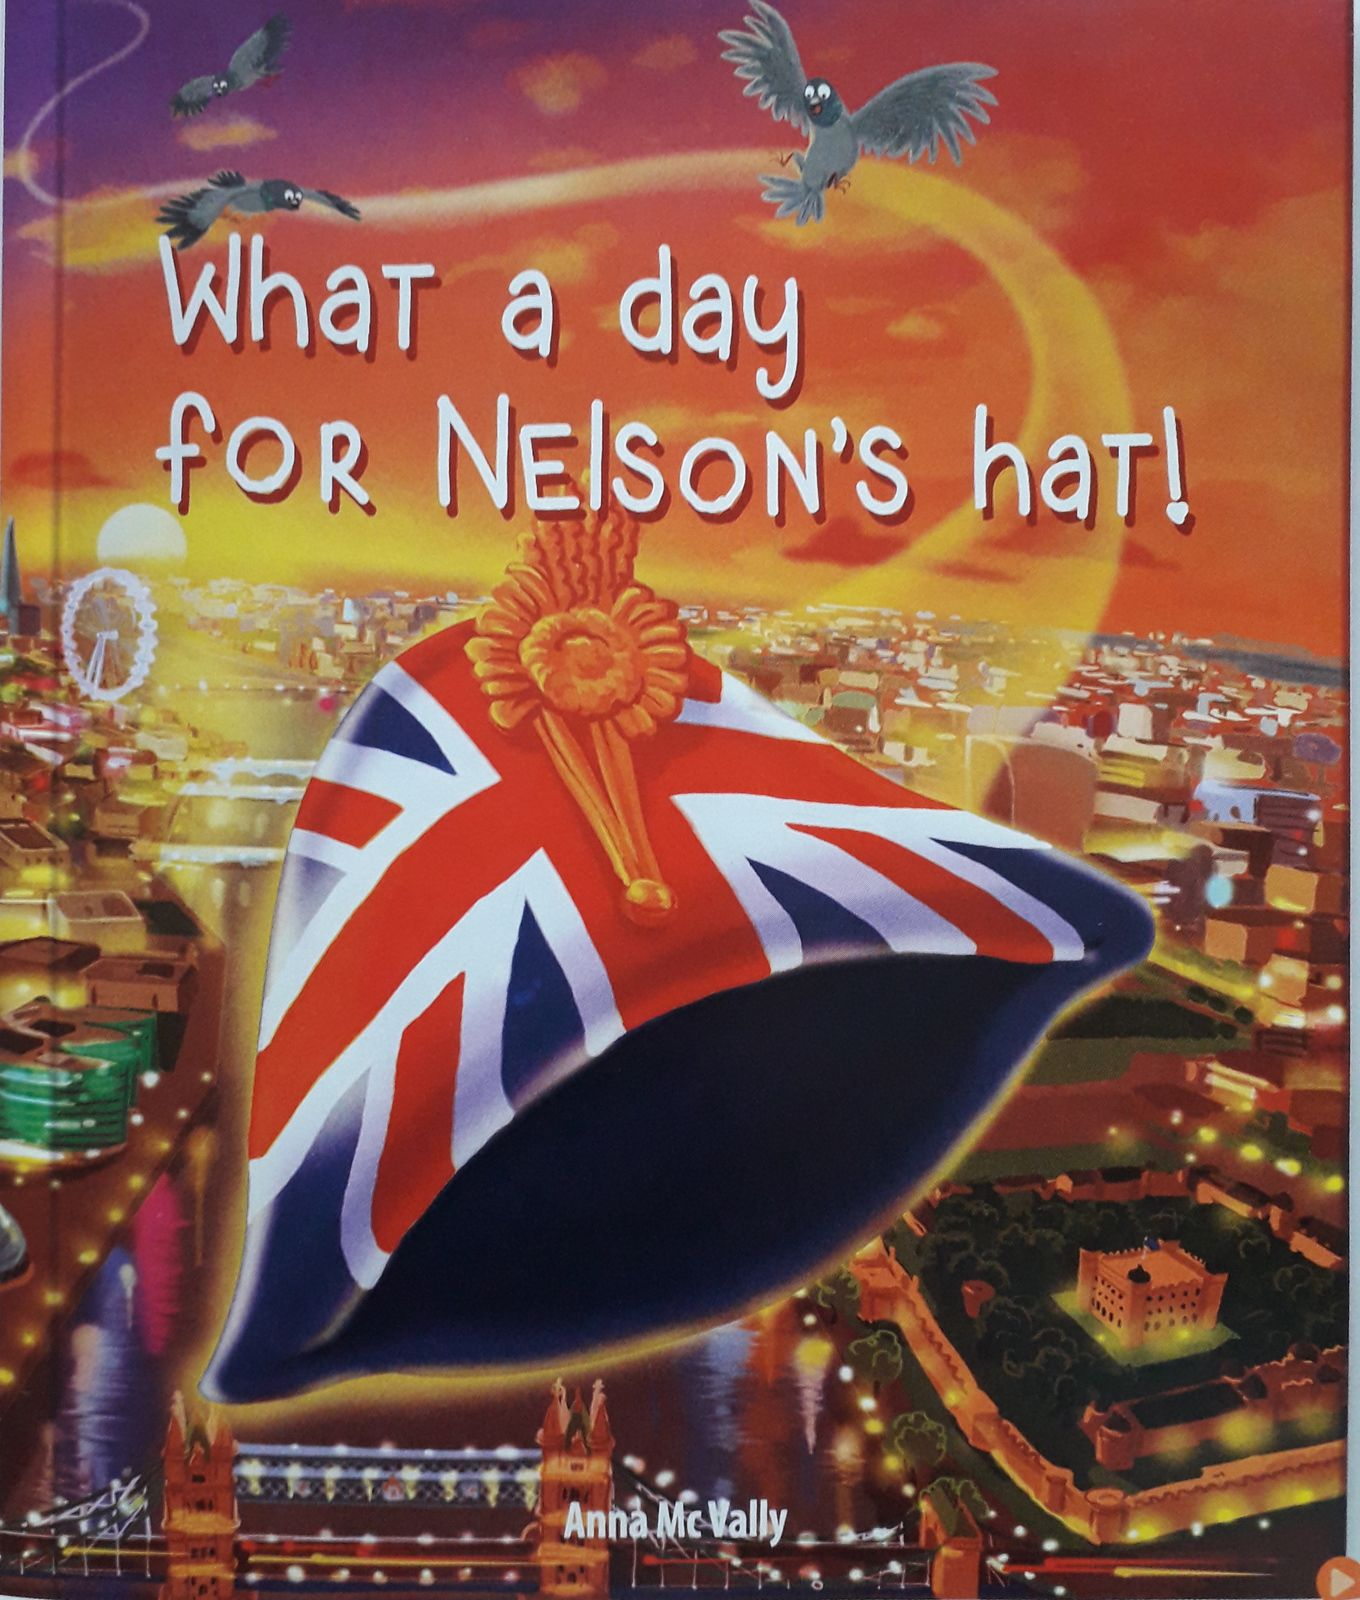 6° - U5L4 - What a day for Nelson's hat!